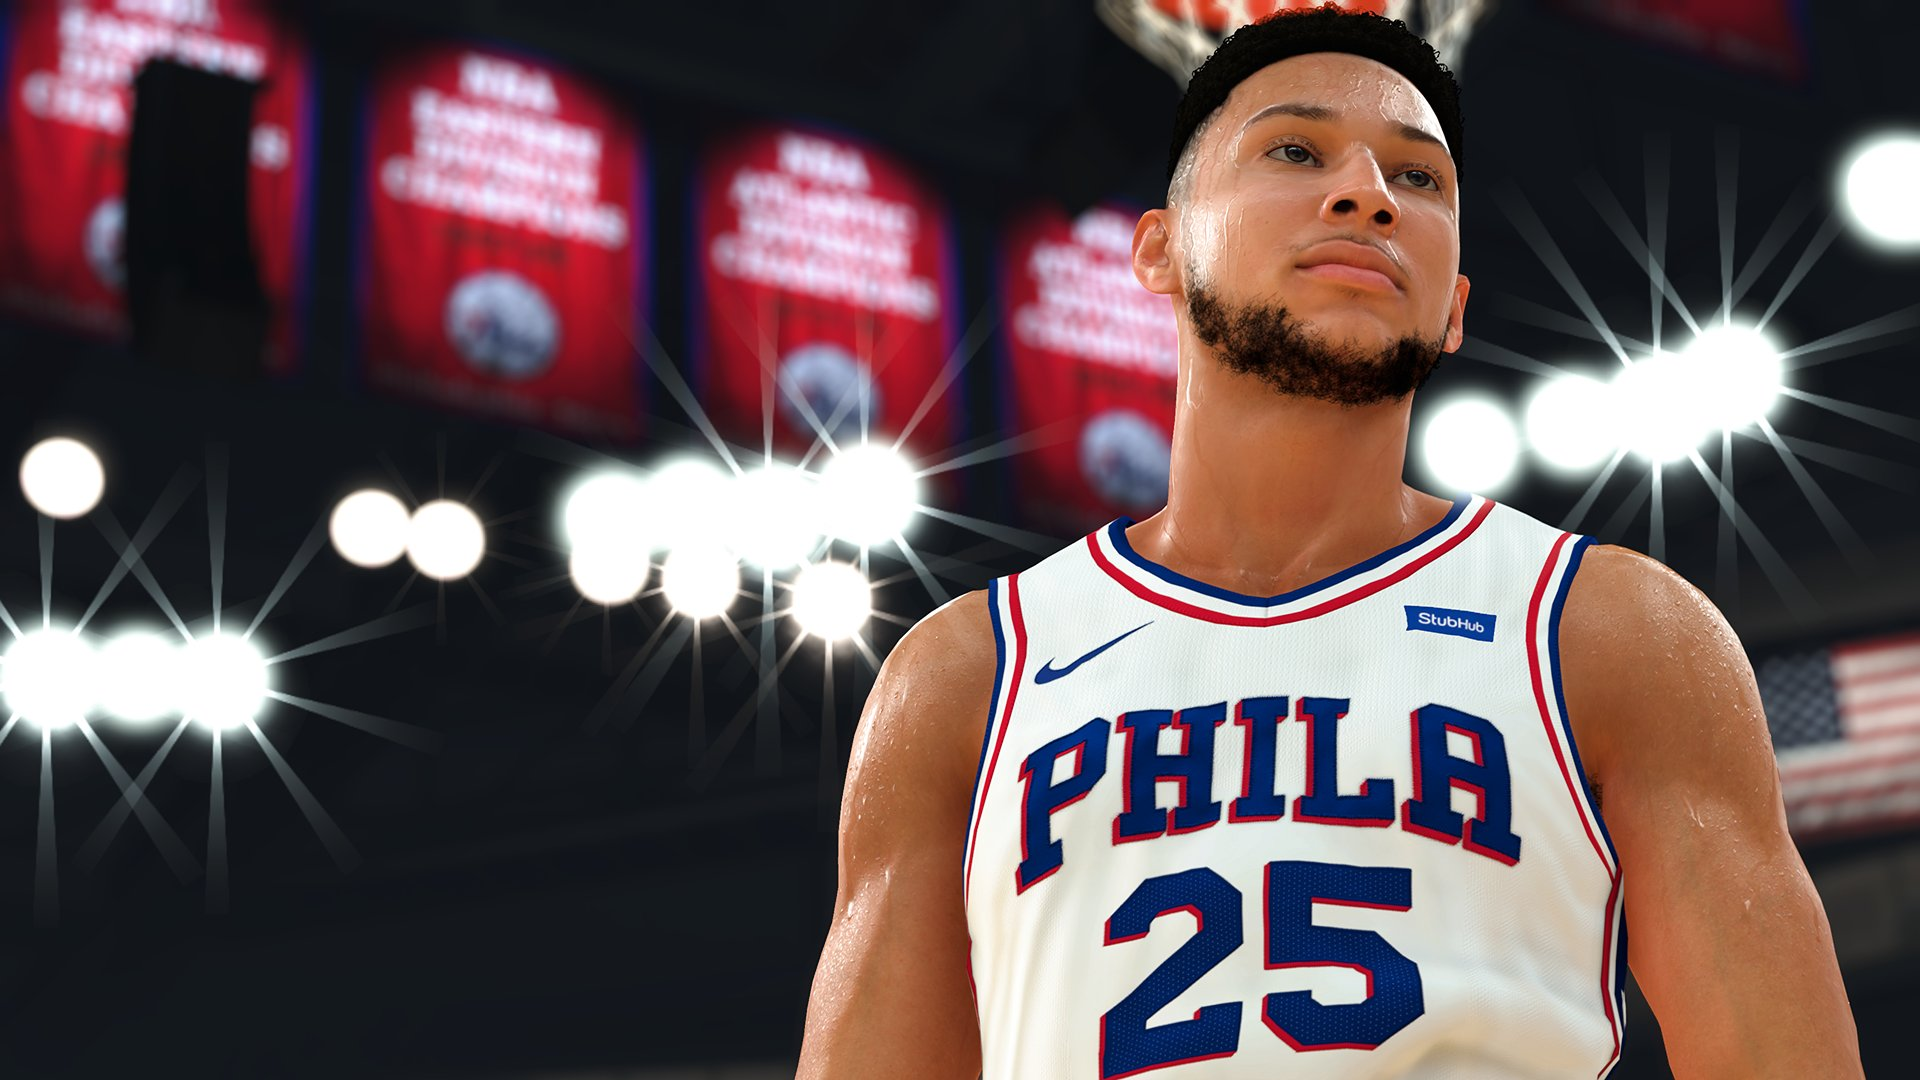 Close up of NBA 2K19 player